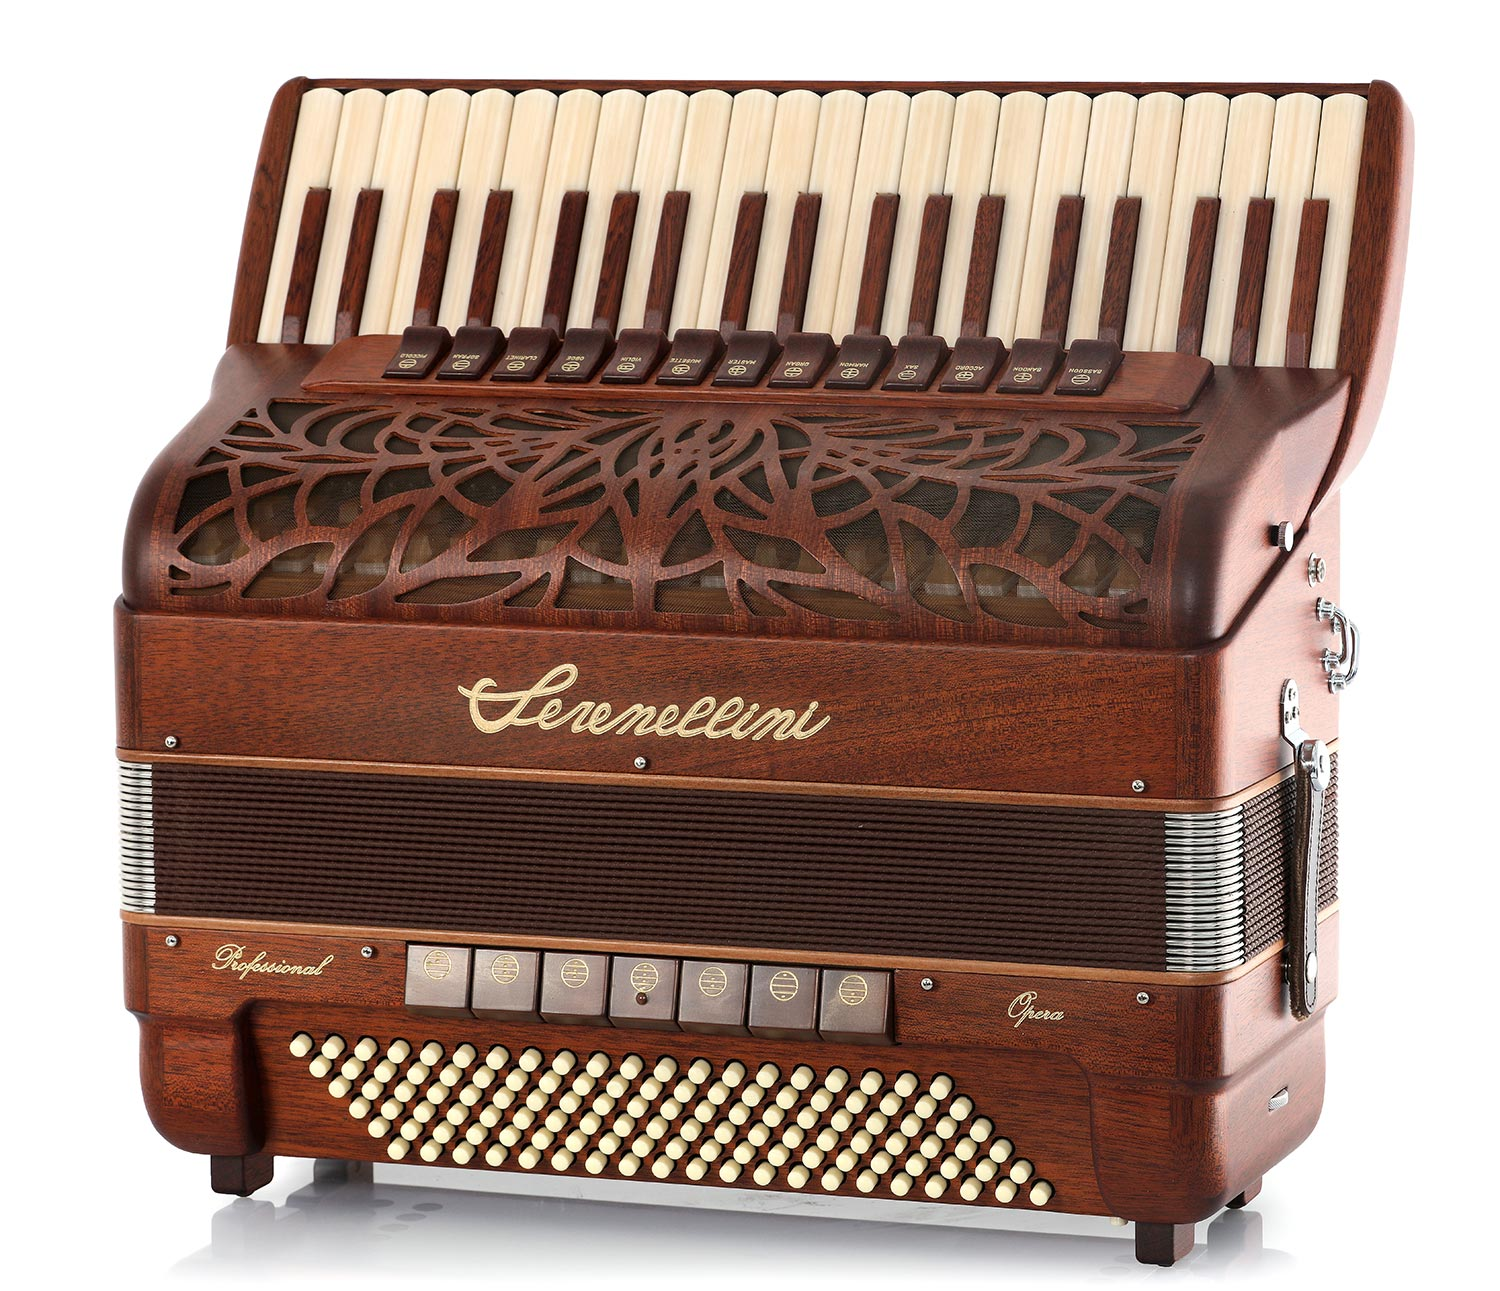 Cassotto Opera 41 2+2 piano accordion